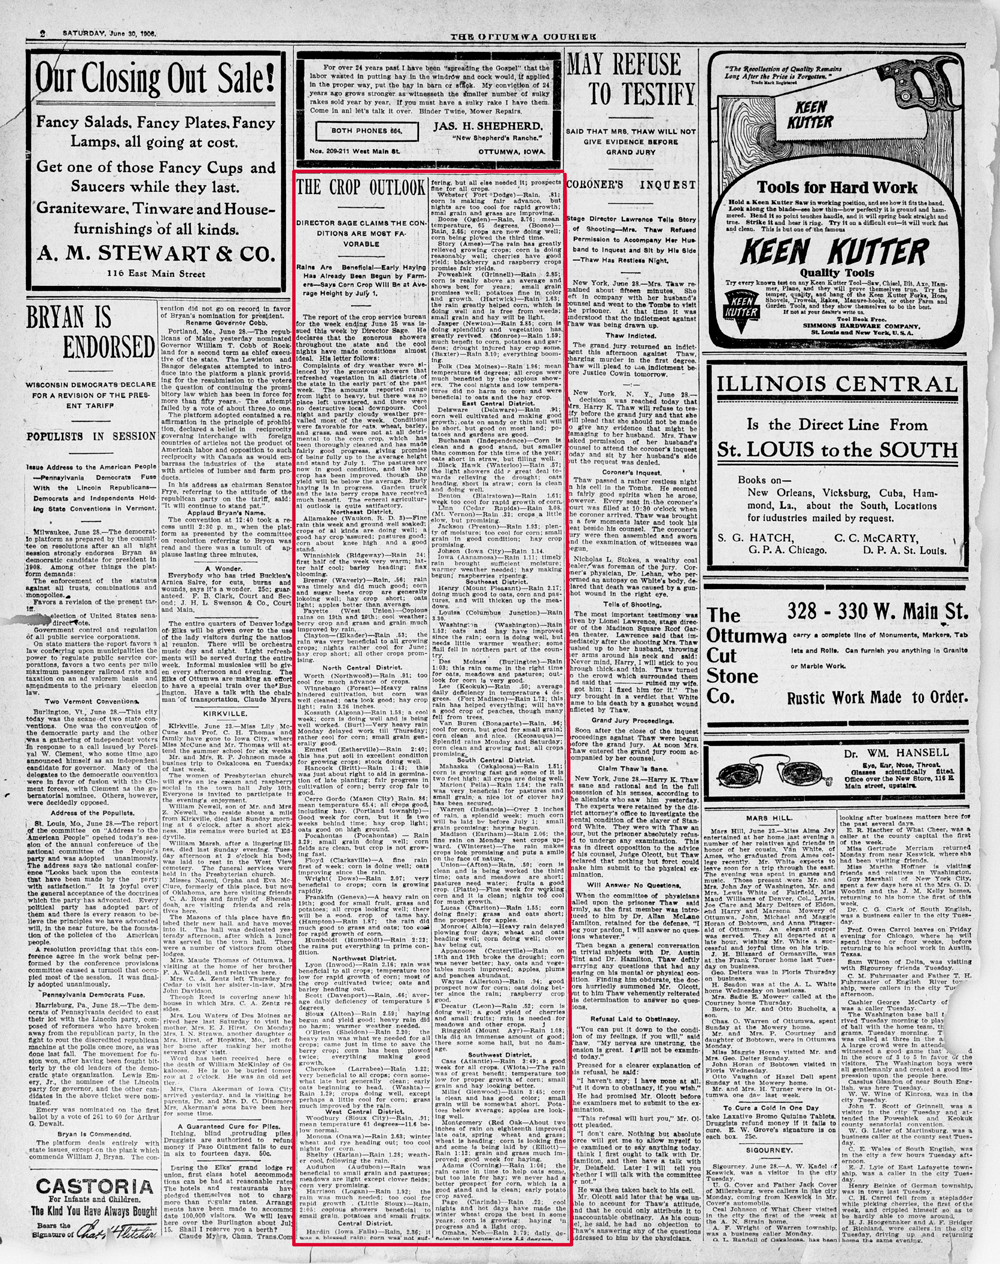 An article about a report filed by Iowa's Director of Agriculture J.R. Sage.